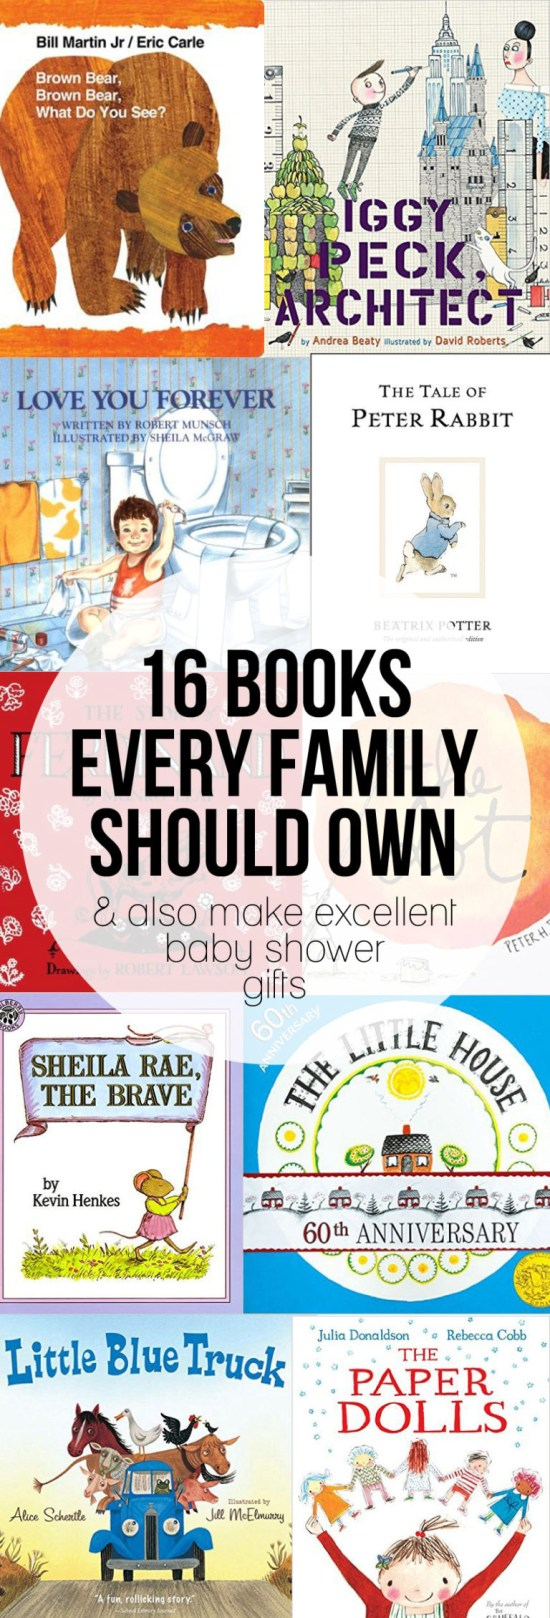 Picture Books that Every Family Should Own